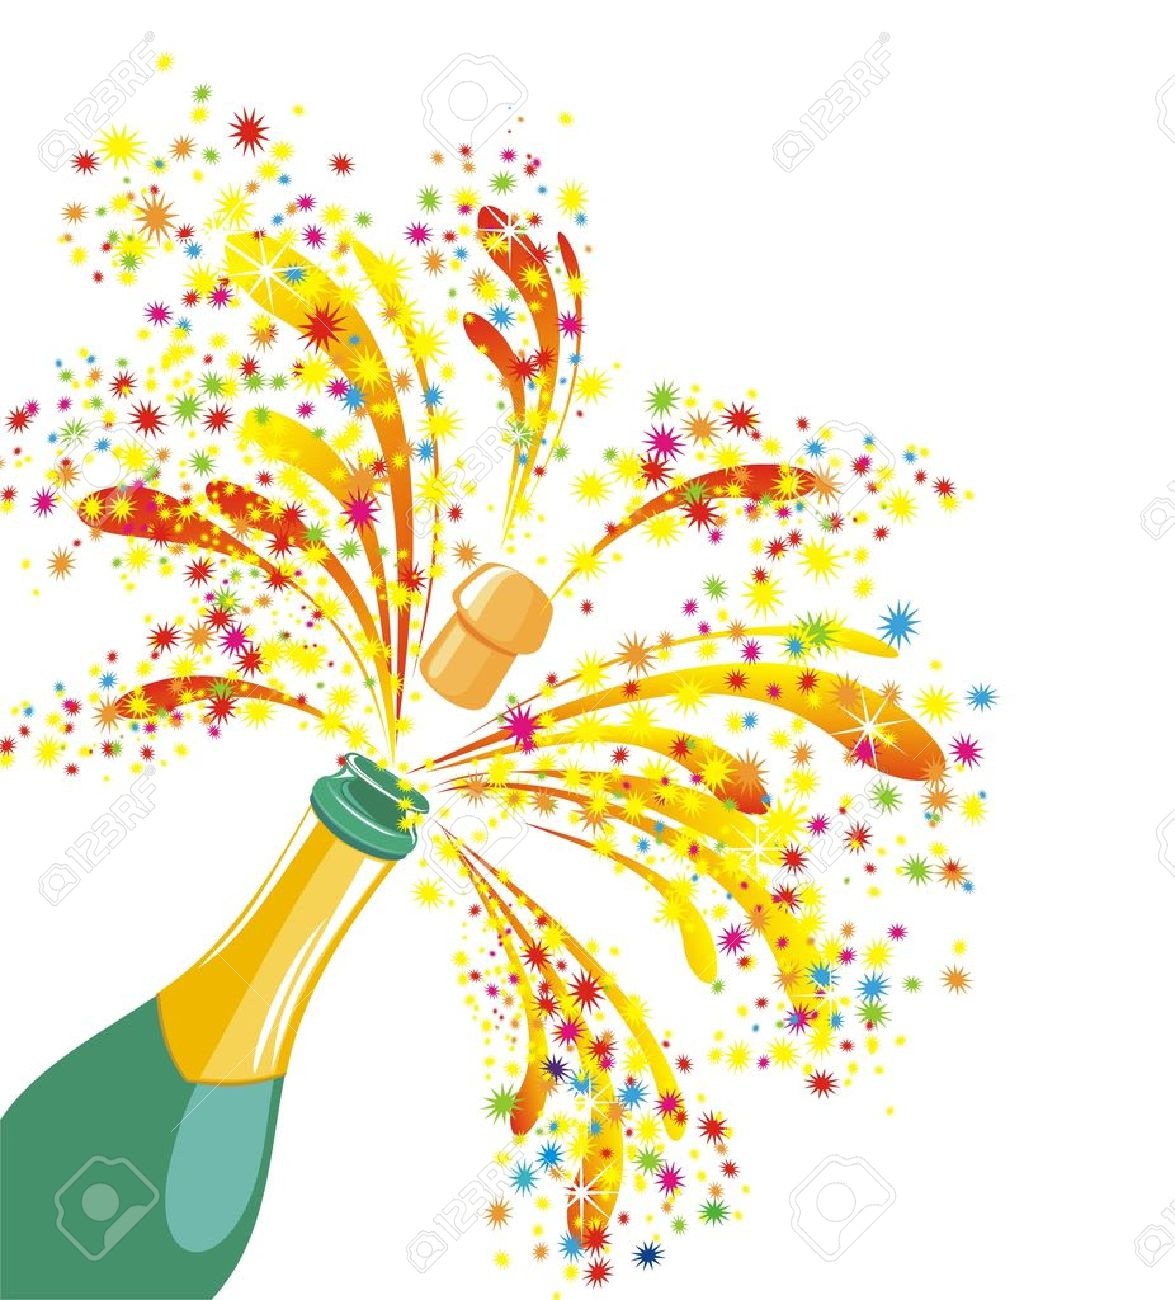 Celebration - Champagne Celebration Open Champagne Bottle Stock Vector 16468236